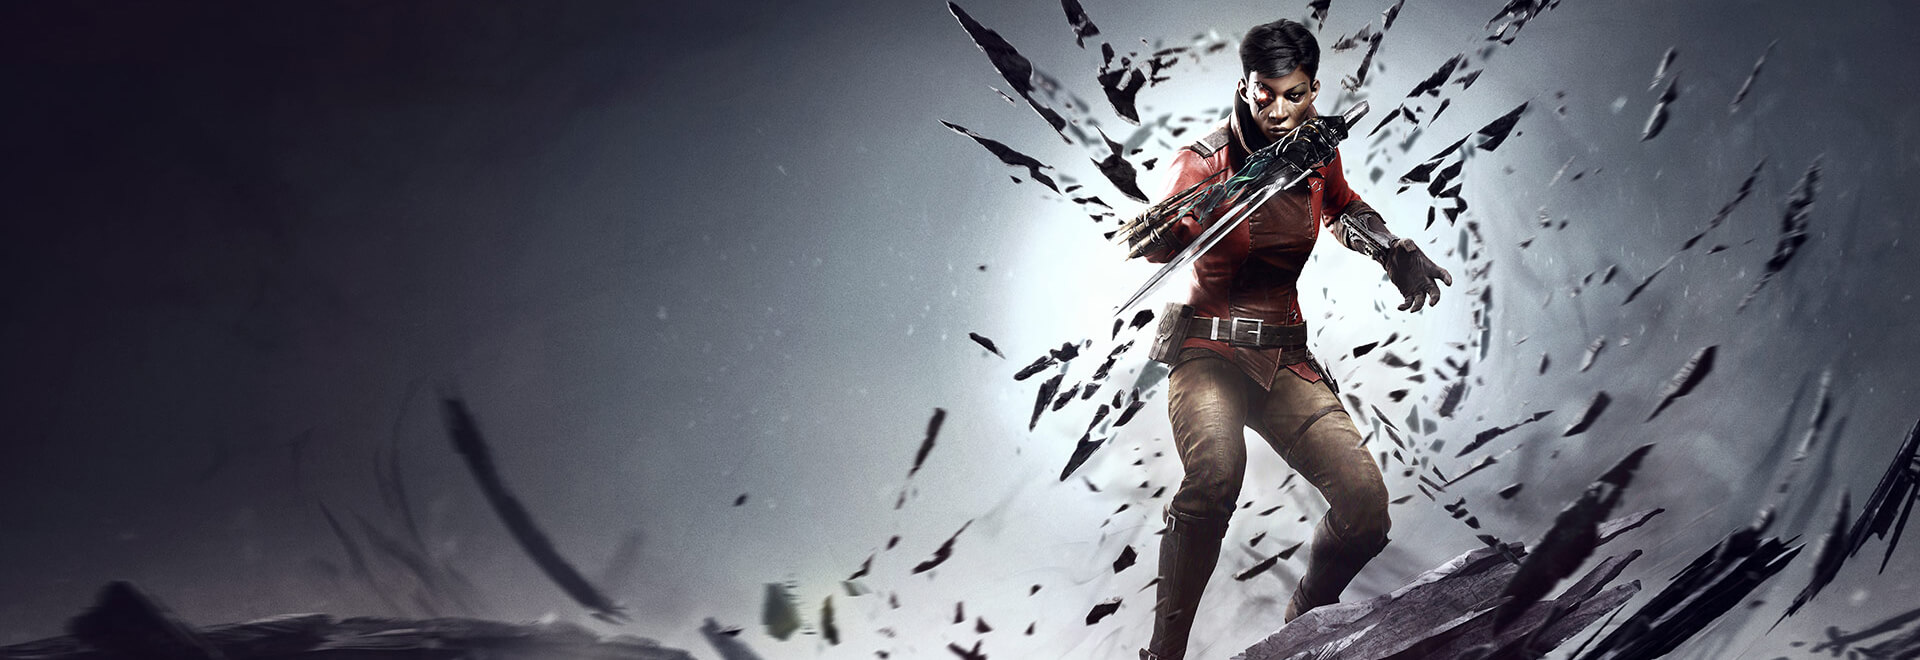 Dishonored: Death of the Outsider Feature Image